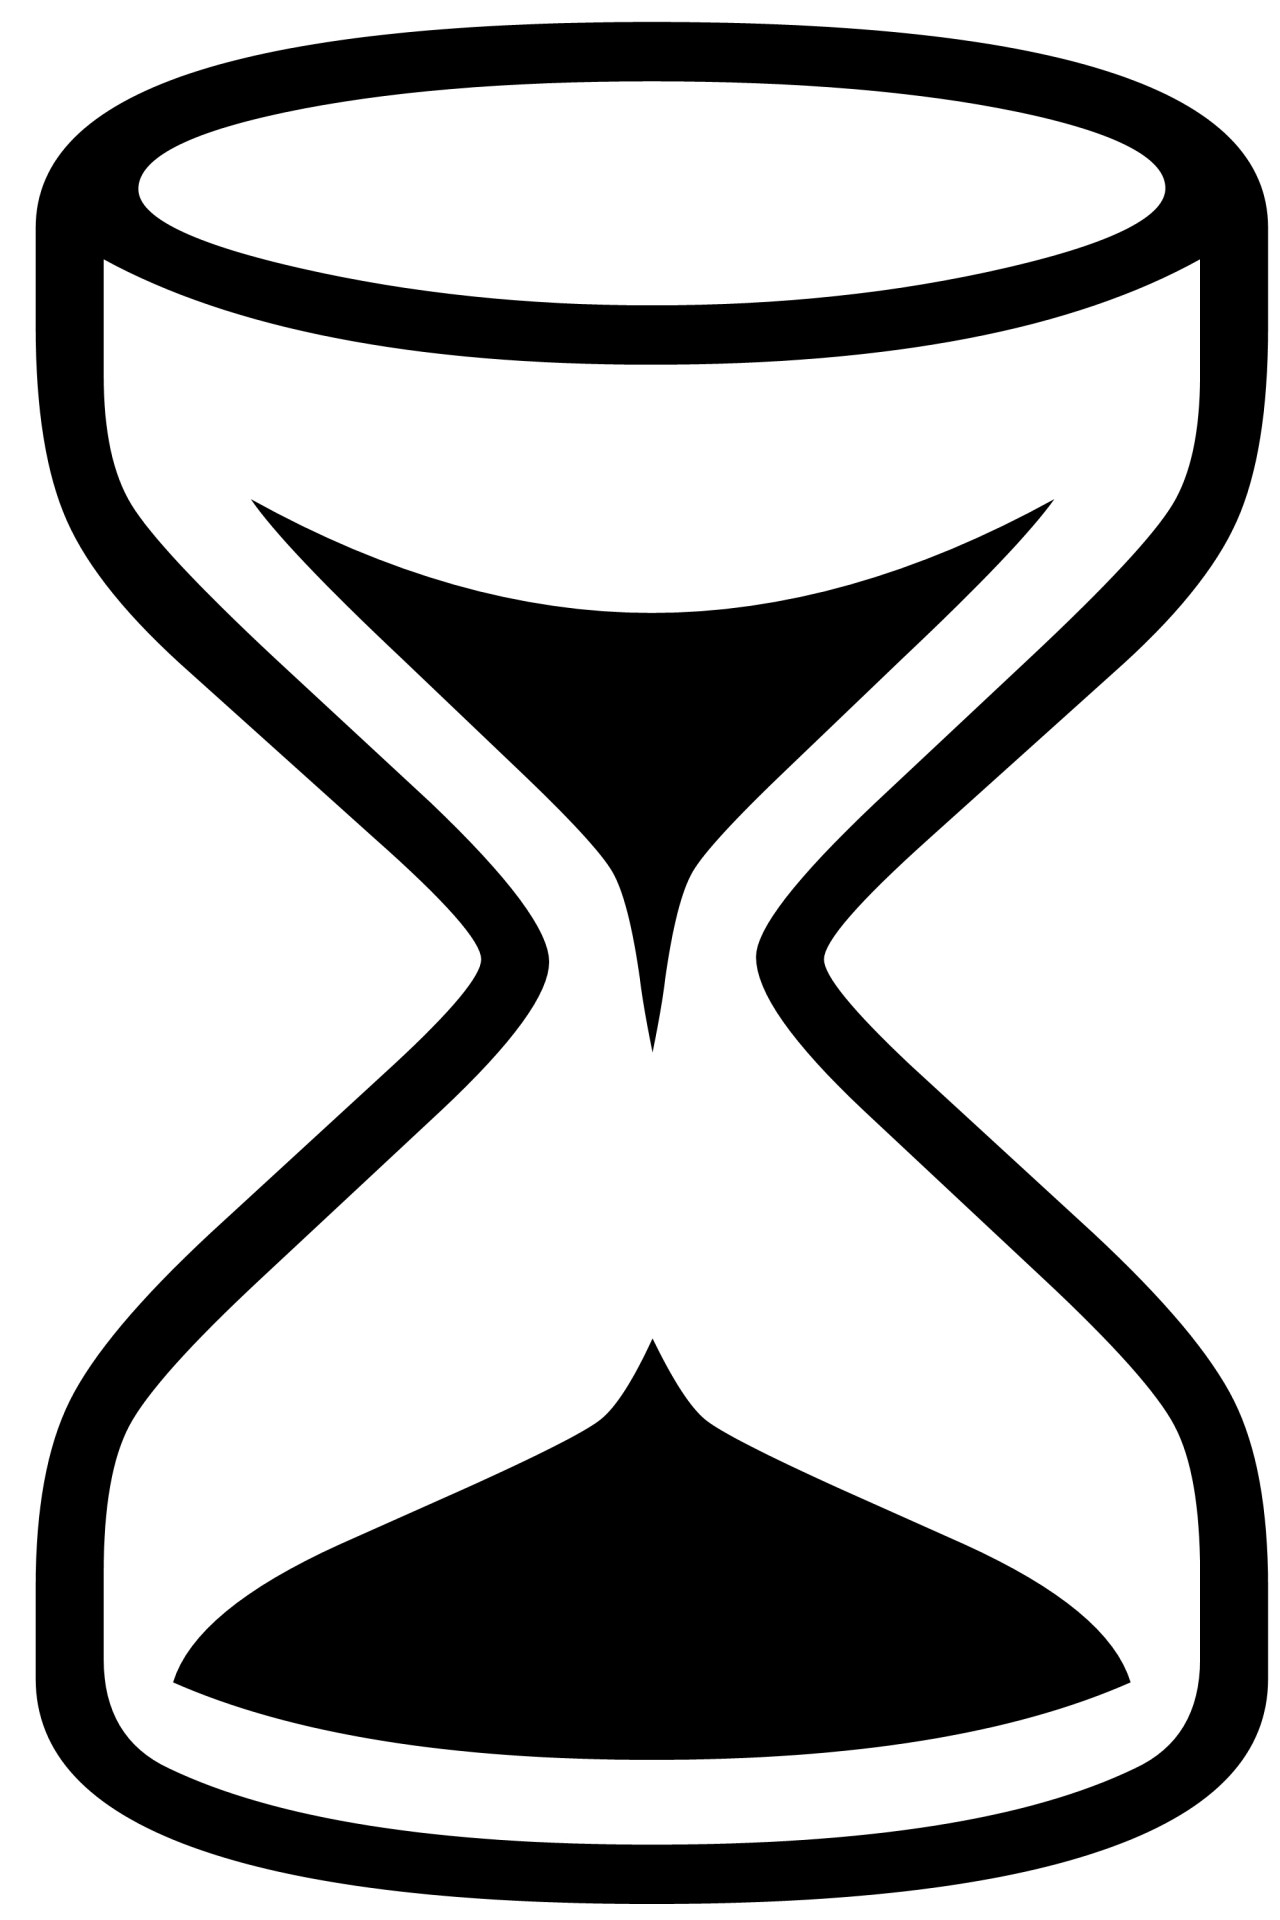 Hourglass,hour,glass,isolated,timer.